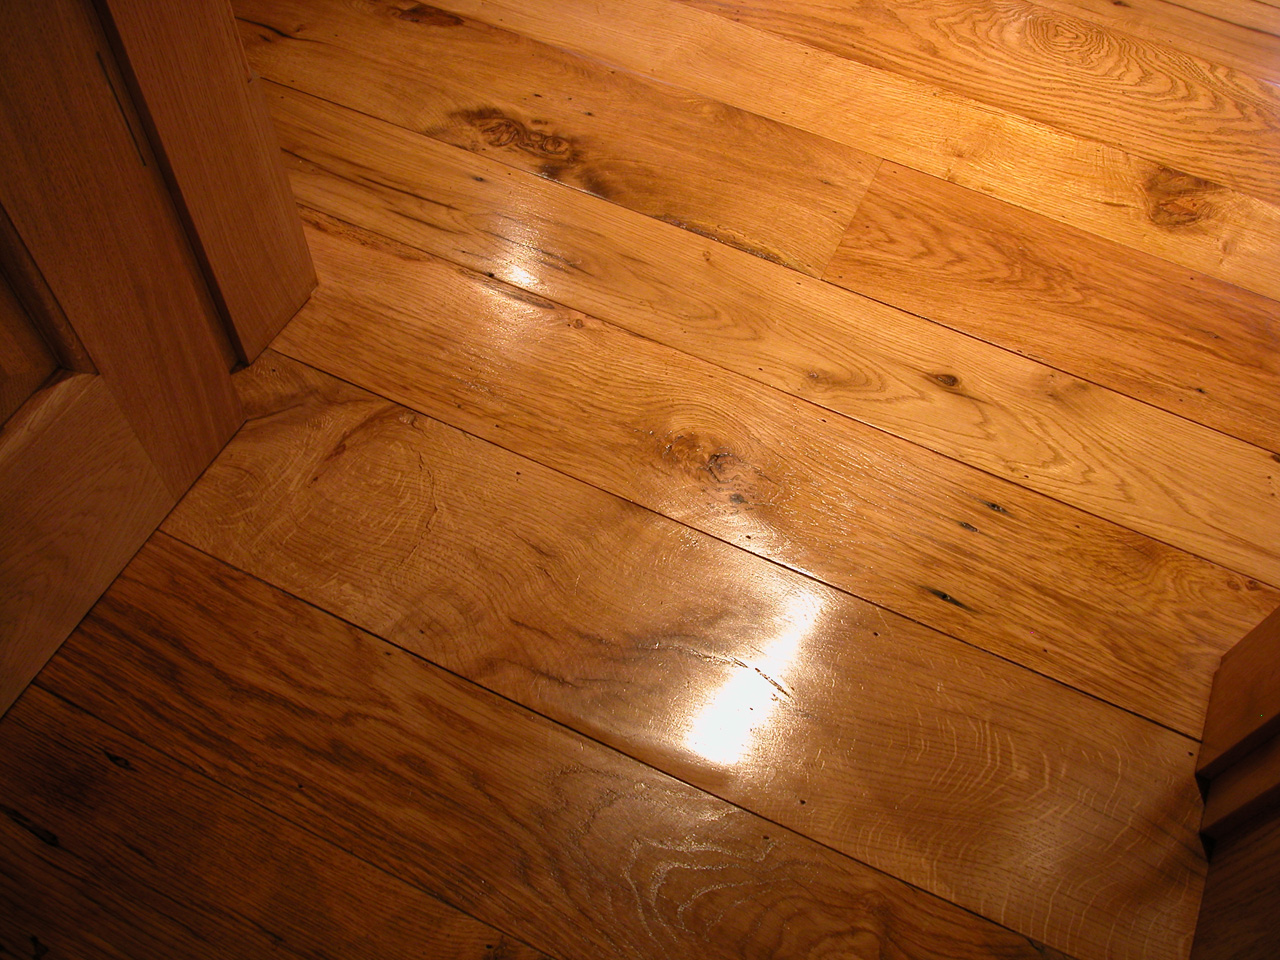 Wooden flooring, Handshaped Reclaimed Oak Planks